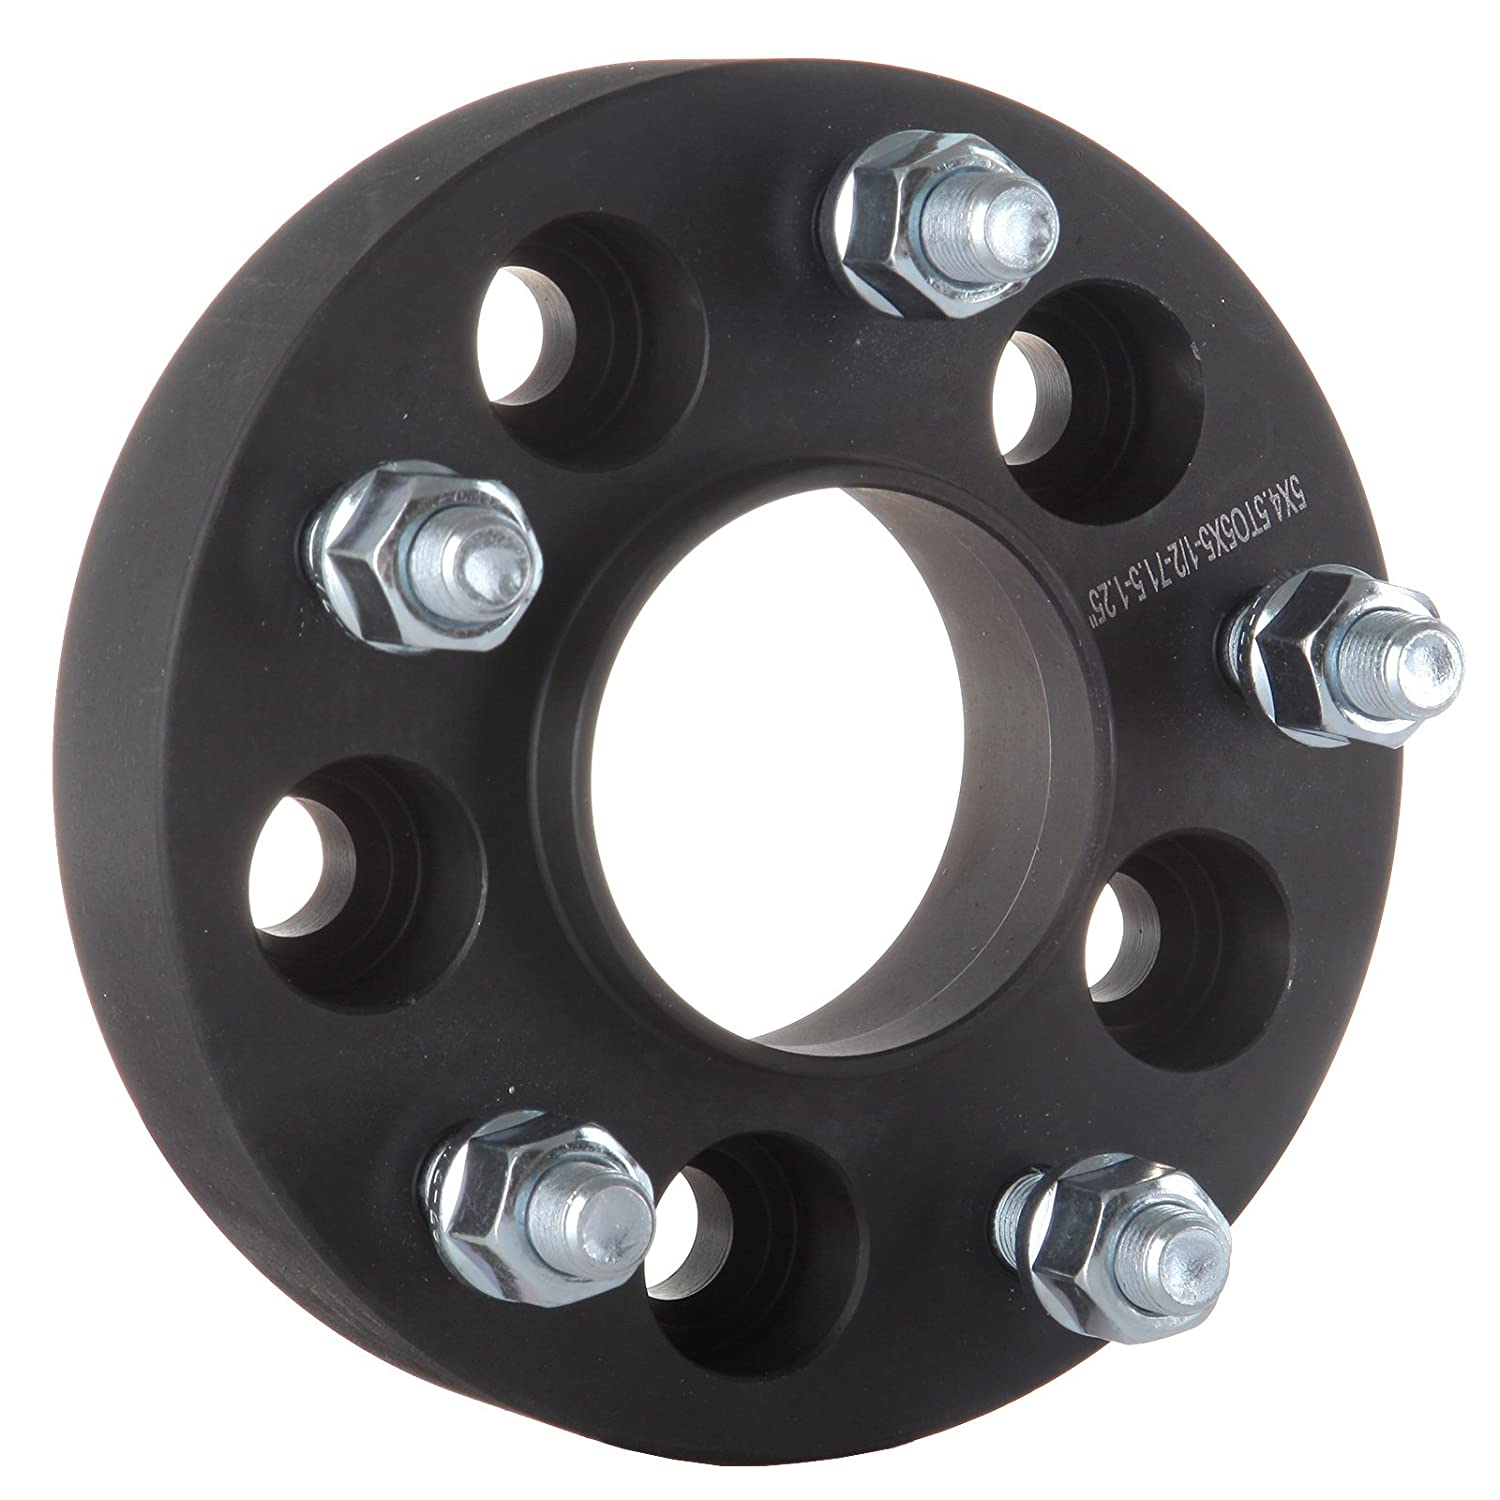 ECCPP 5 lug Wheel Adapters Hubcentric 4X 1.25 inch 5 lug 5x4.5 to 5x5 Wheel Spacer Adapter Fits for Jeep Wrangler JK RIMS on A TJ OR YJ